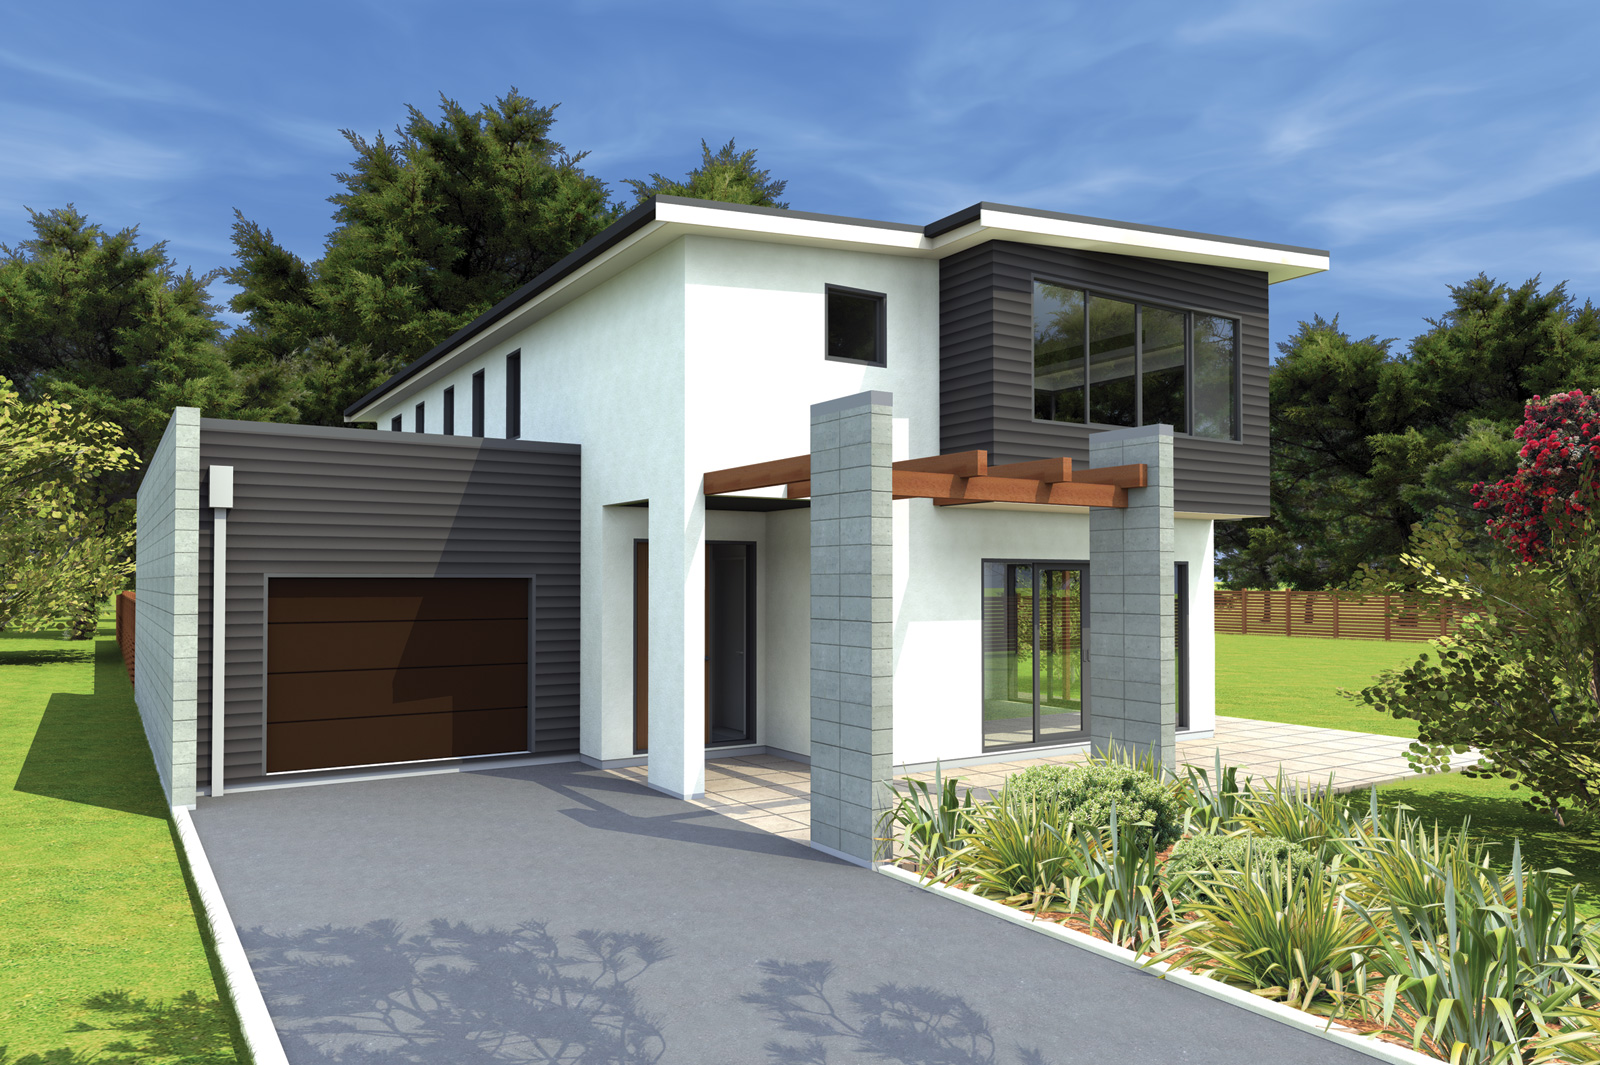 New home designs latest new modern homes designs new for Small house design